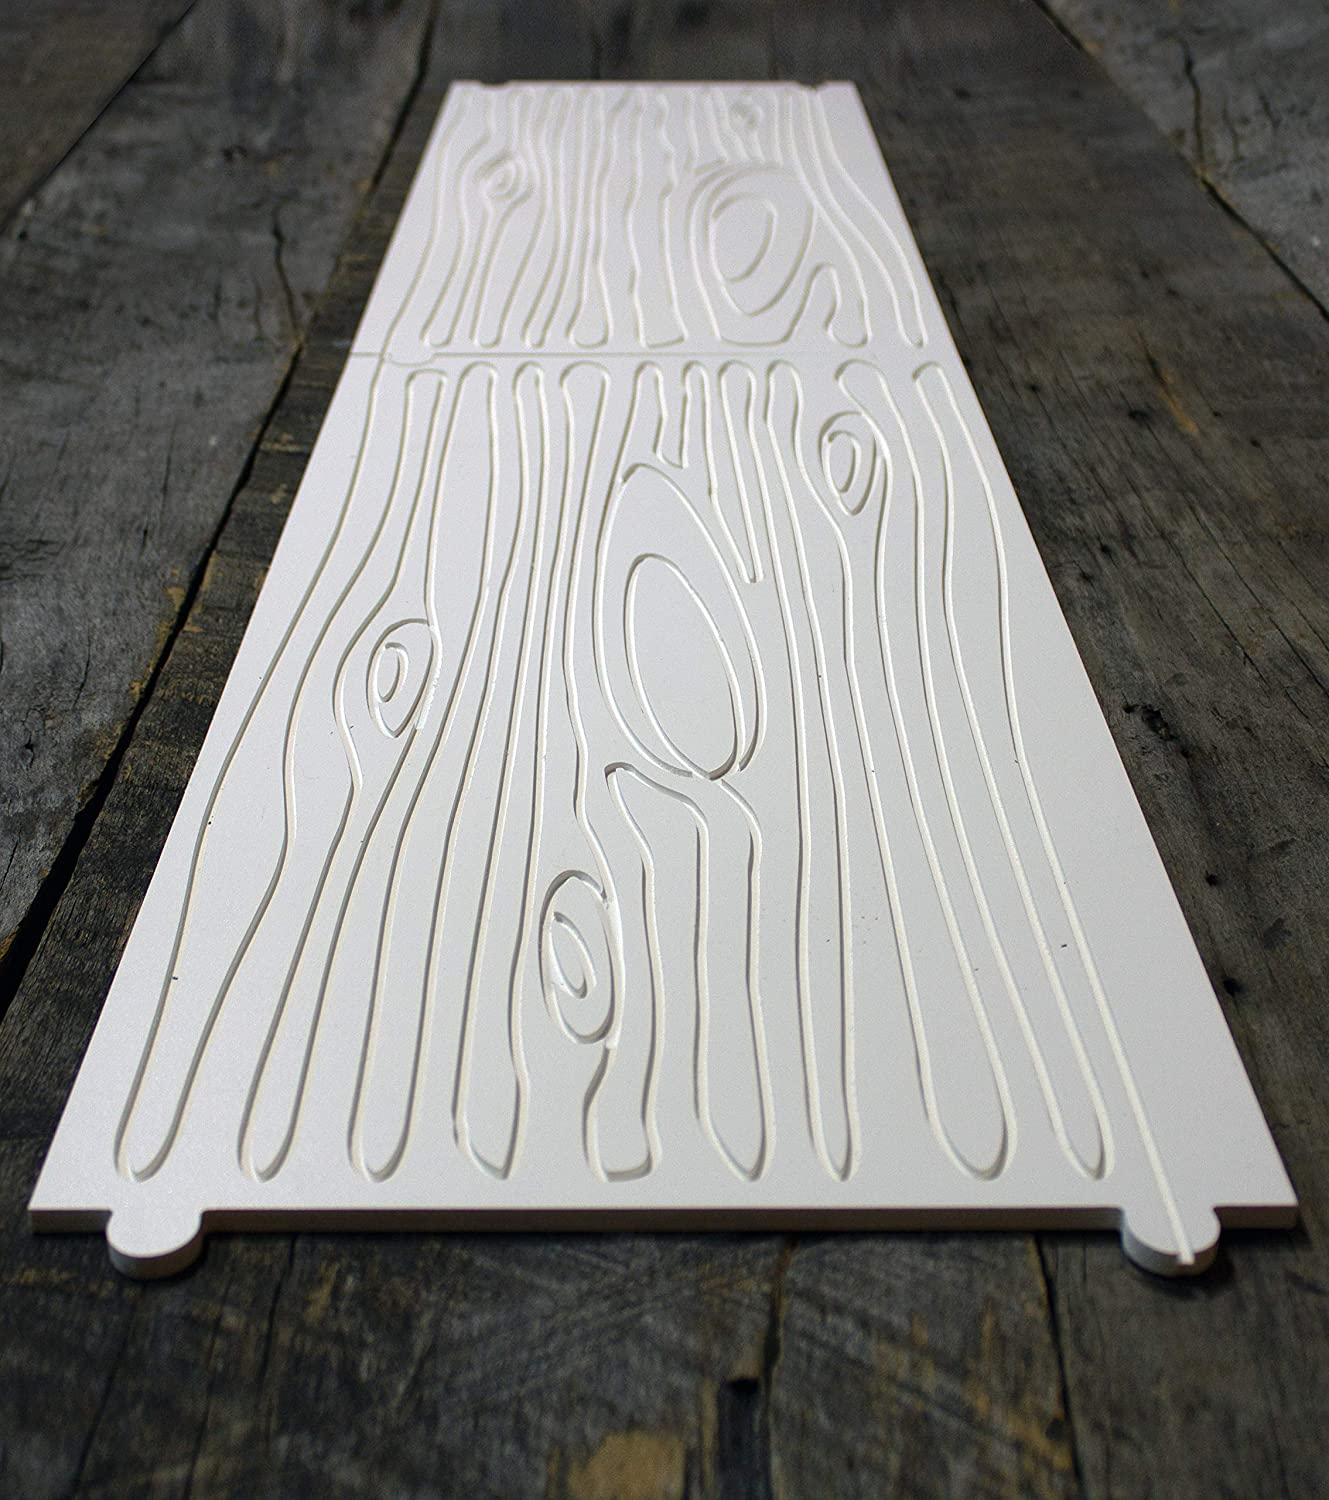 Groovy Patterns Wood Grain Large Knots P Arm Board - Long Latest item Cash special price